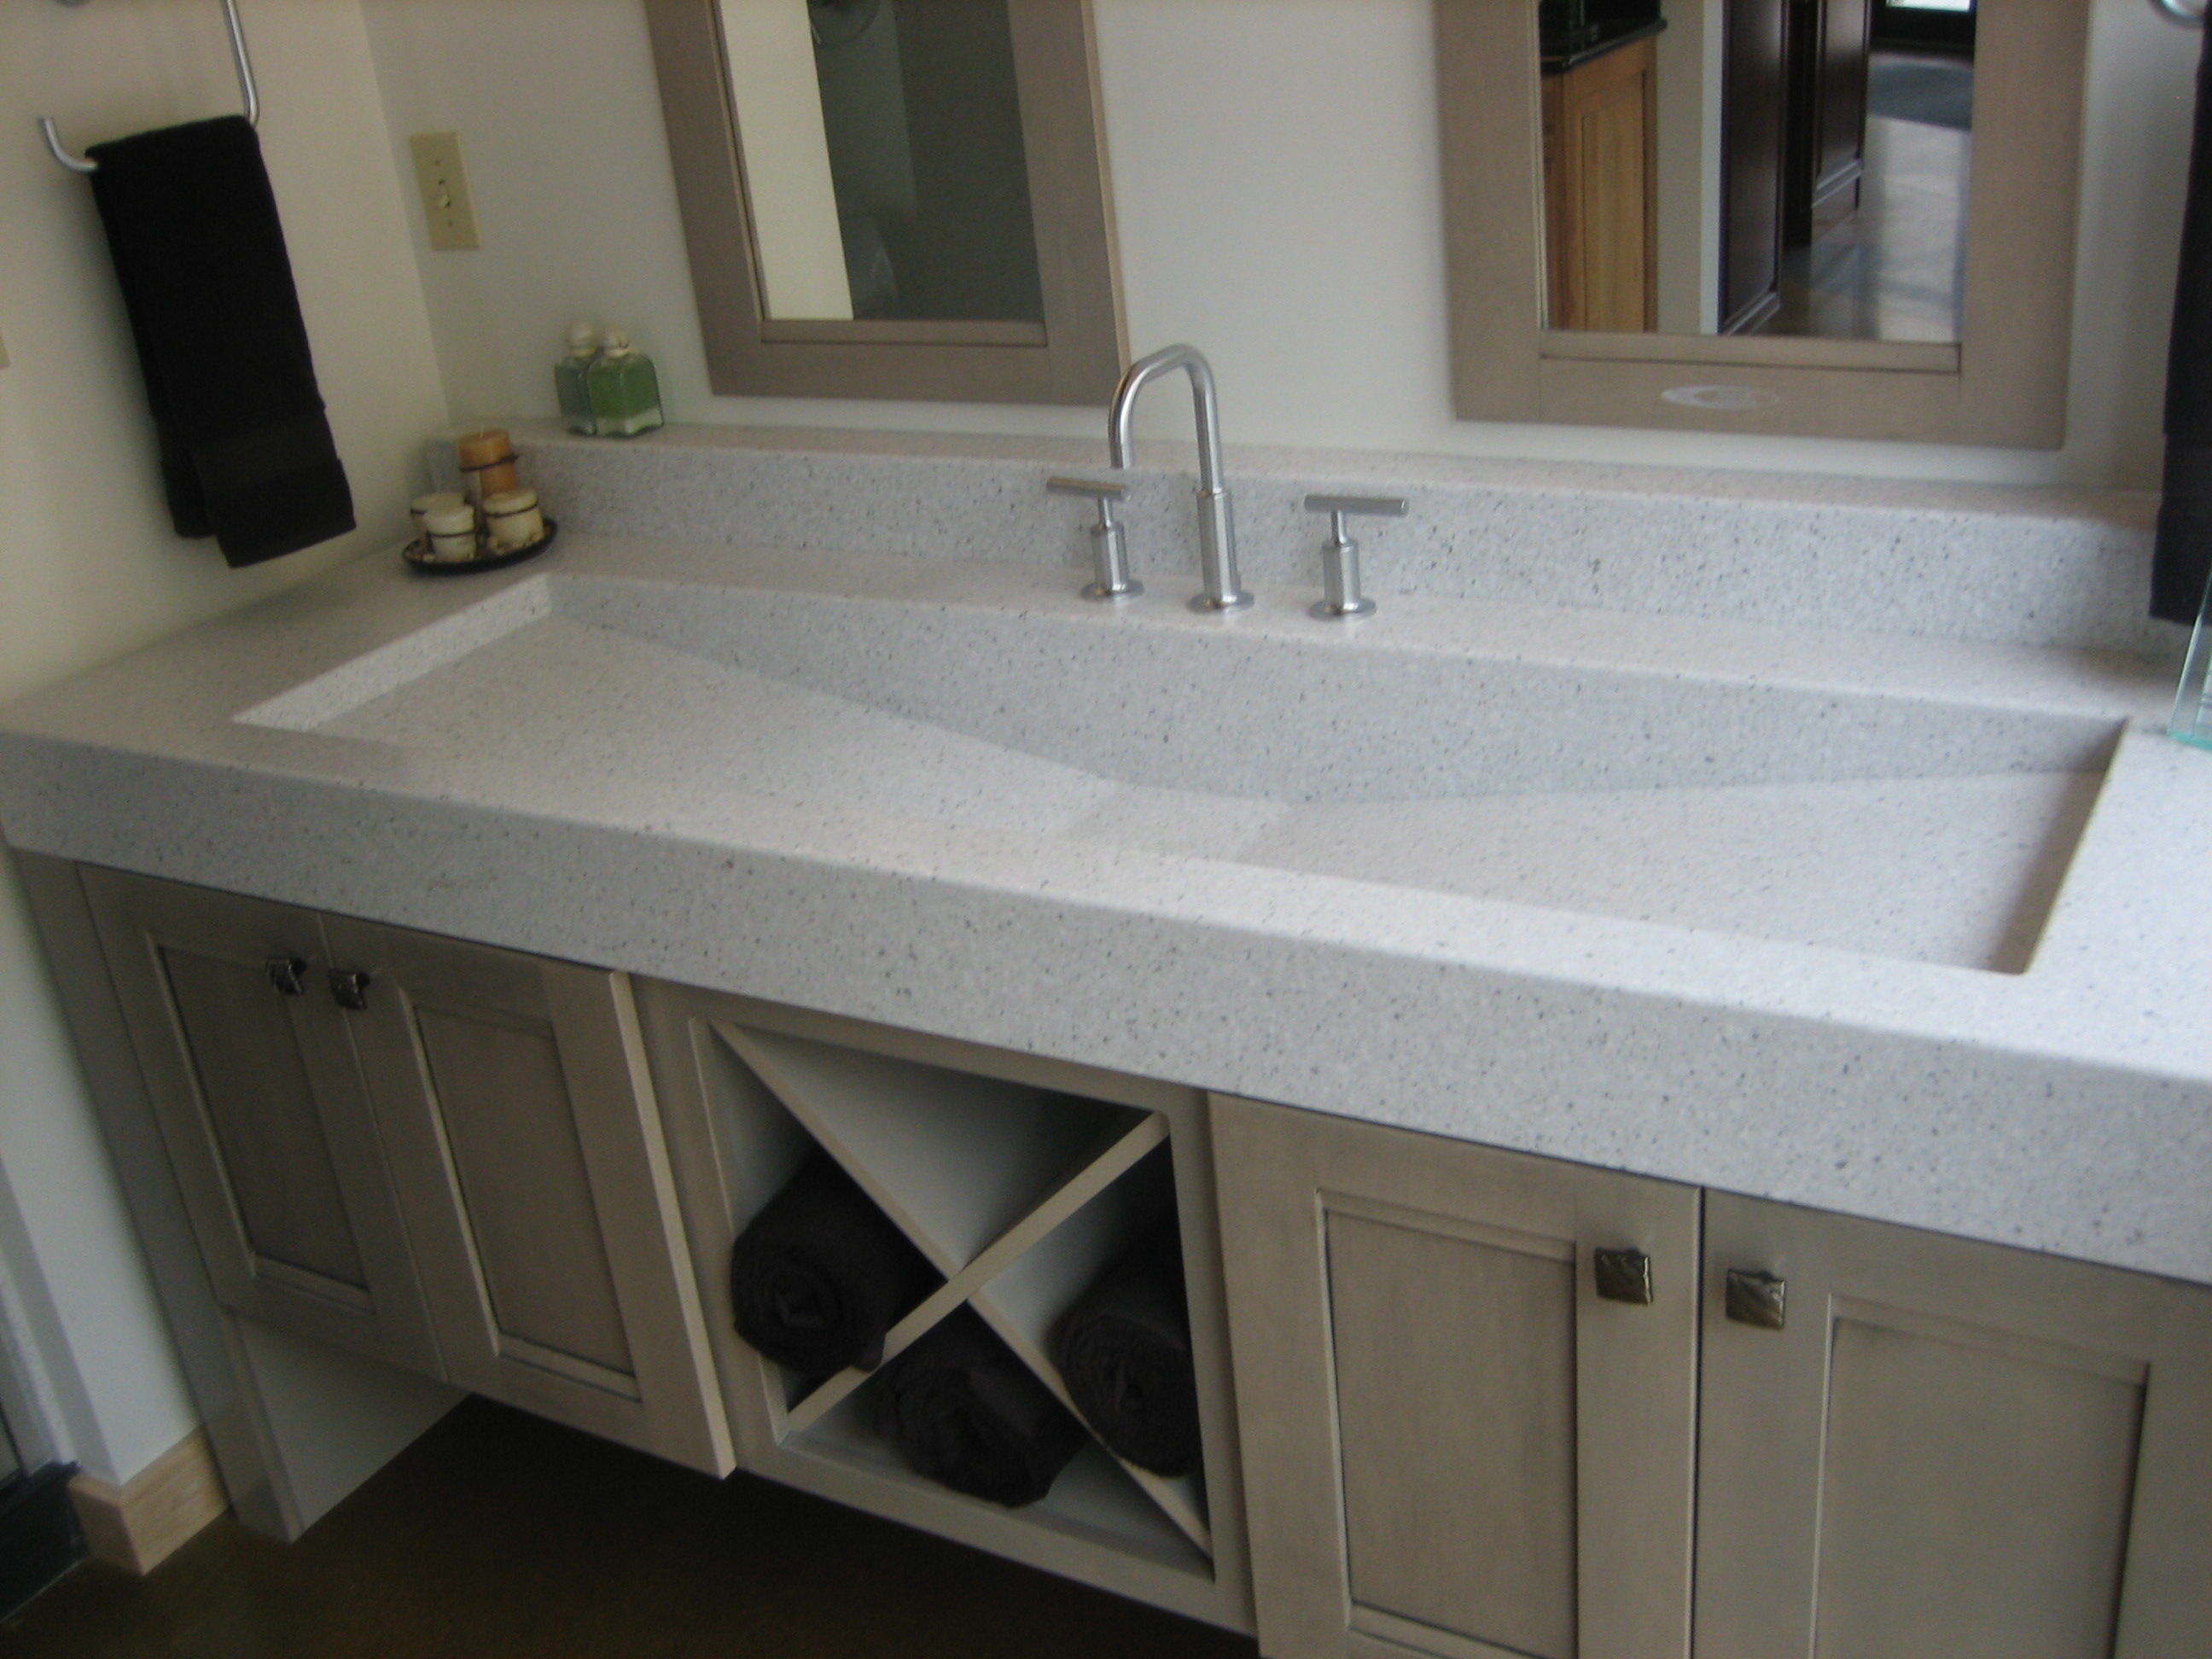 Pin Corian Commerical Trough Sink on Pinterest